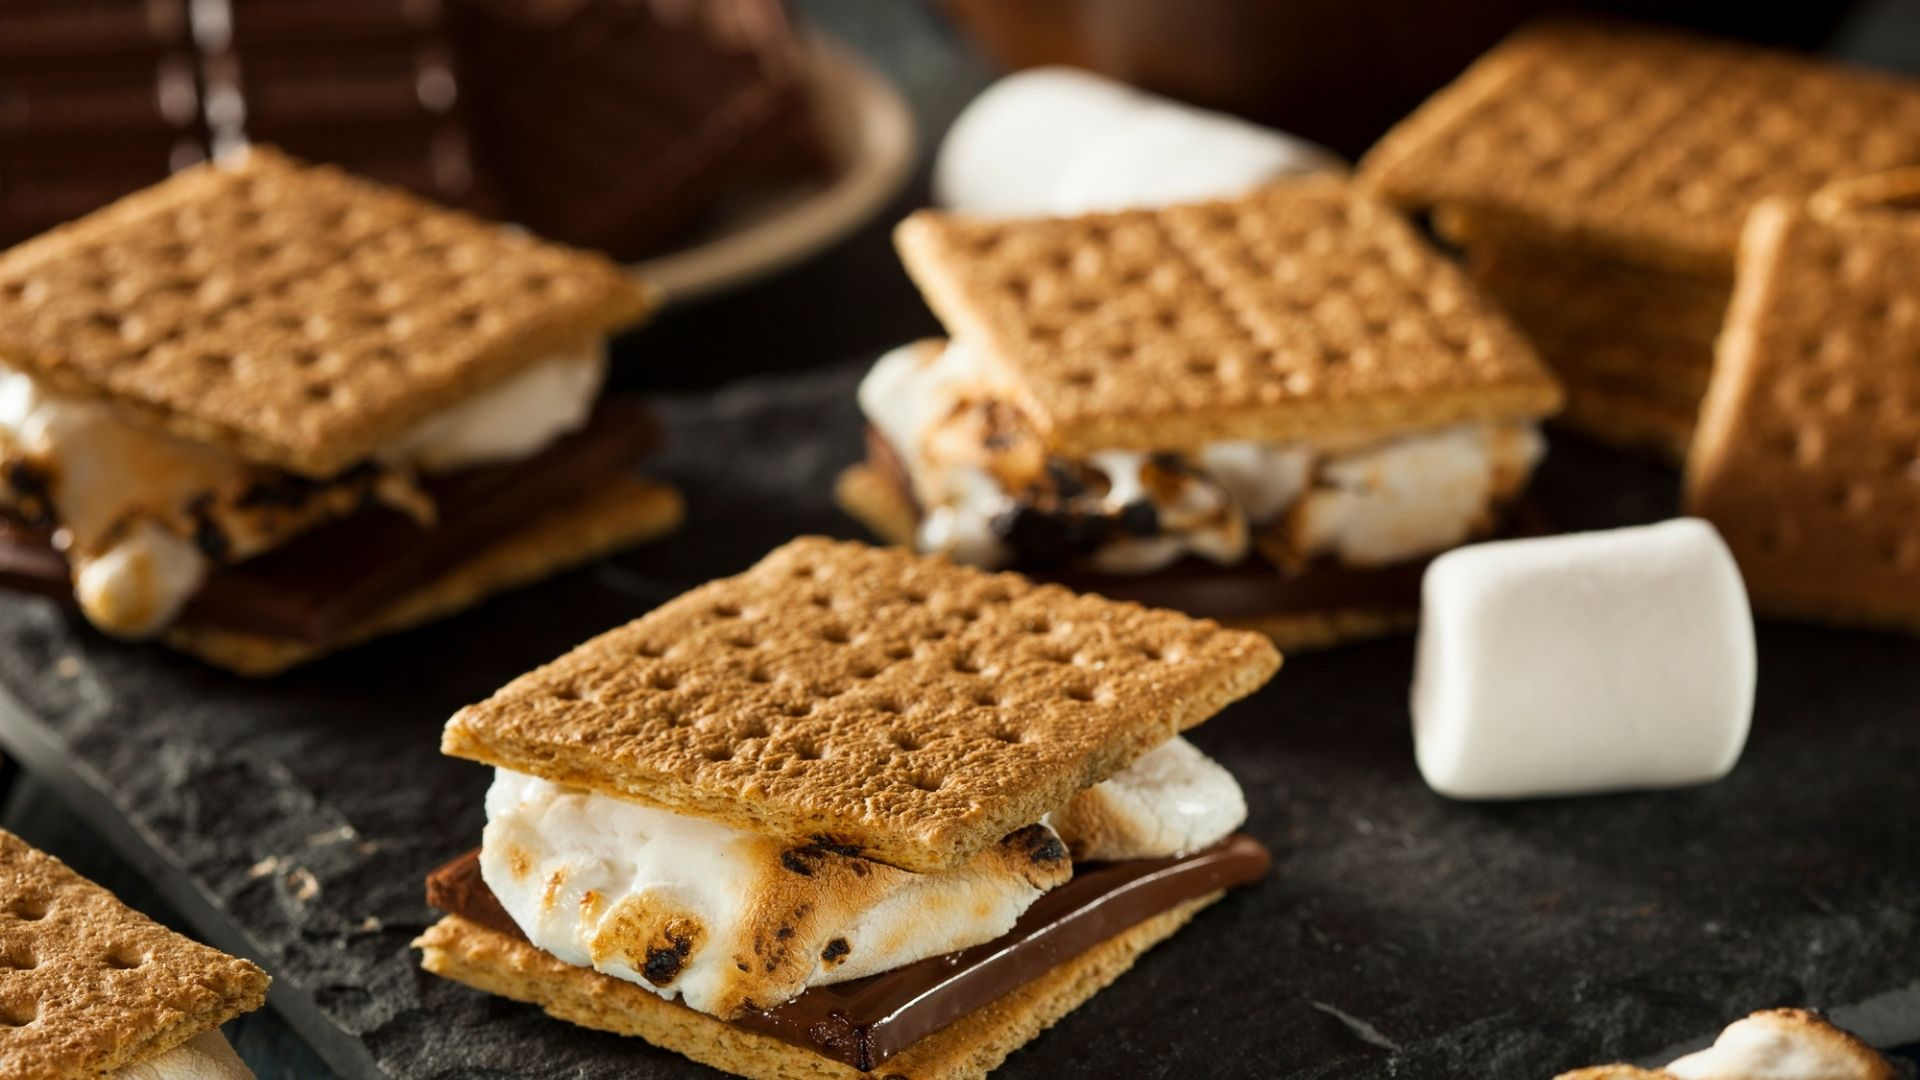 S'mores from a Toaster Oven